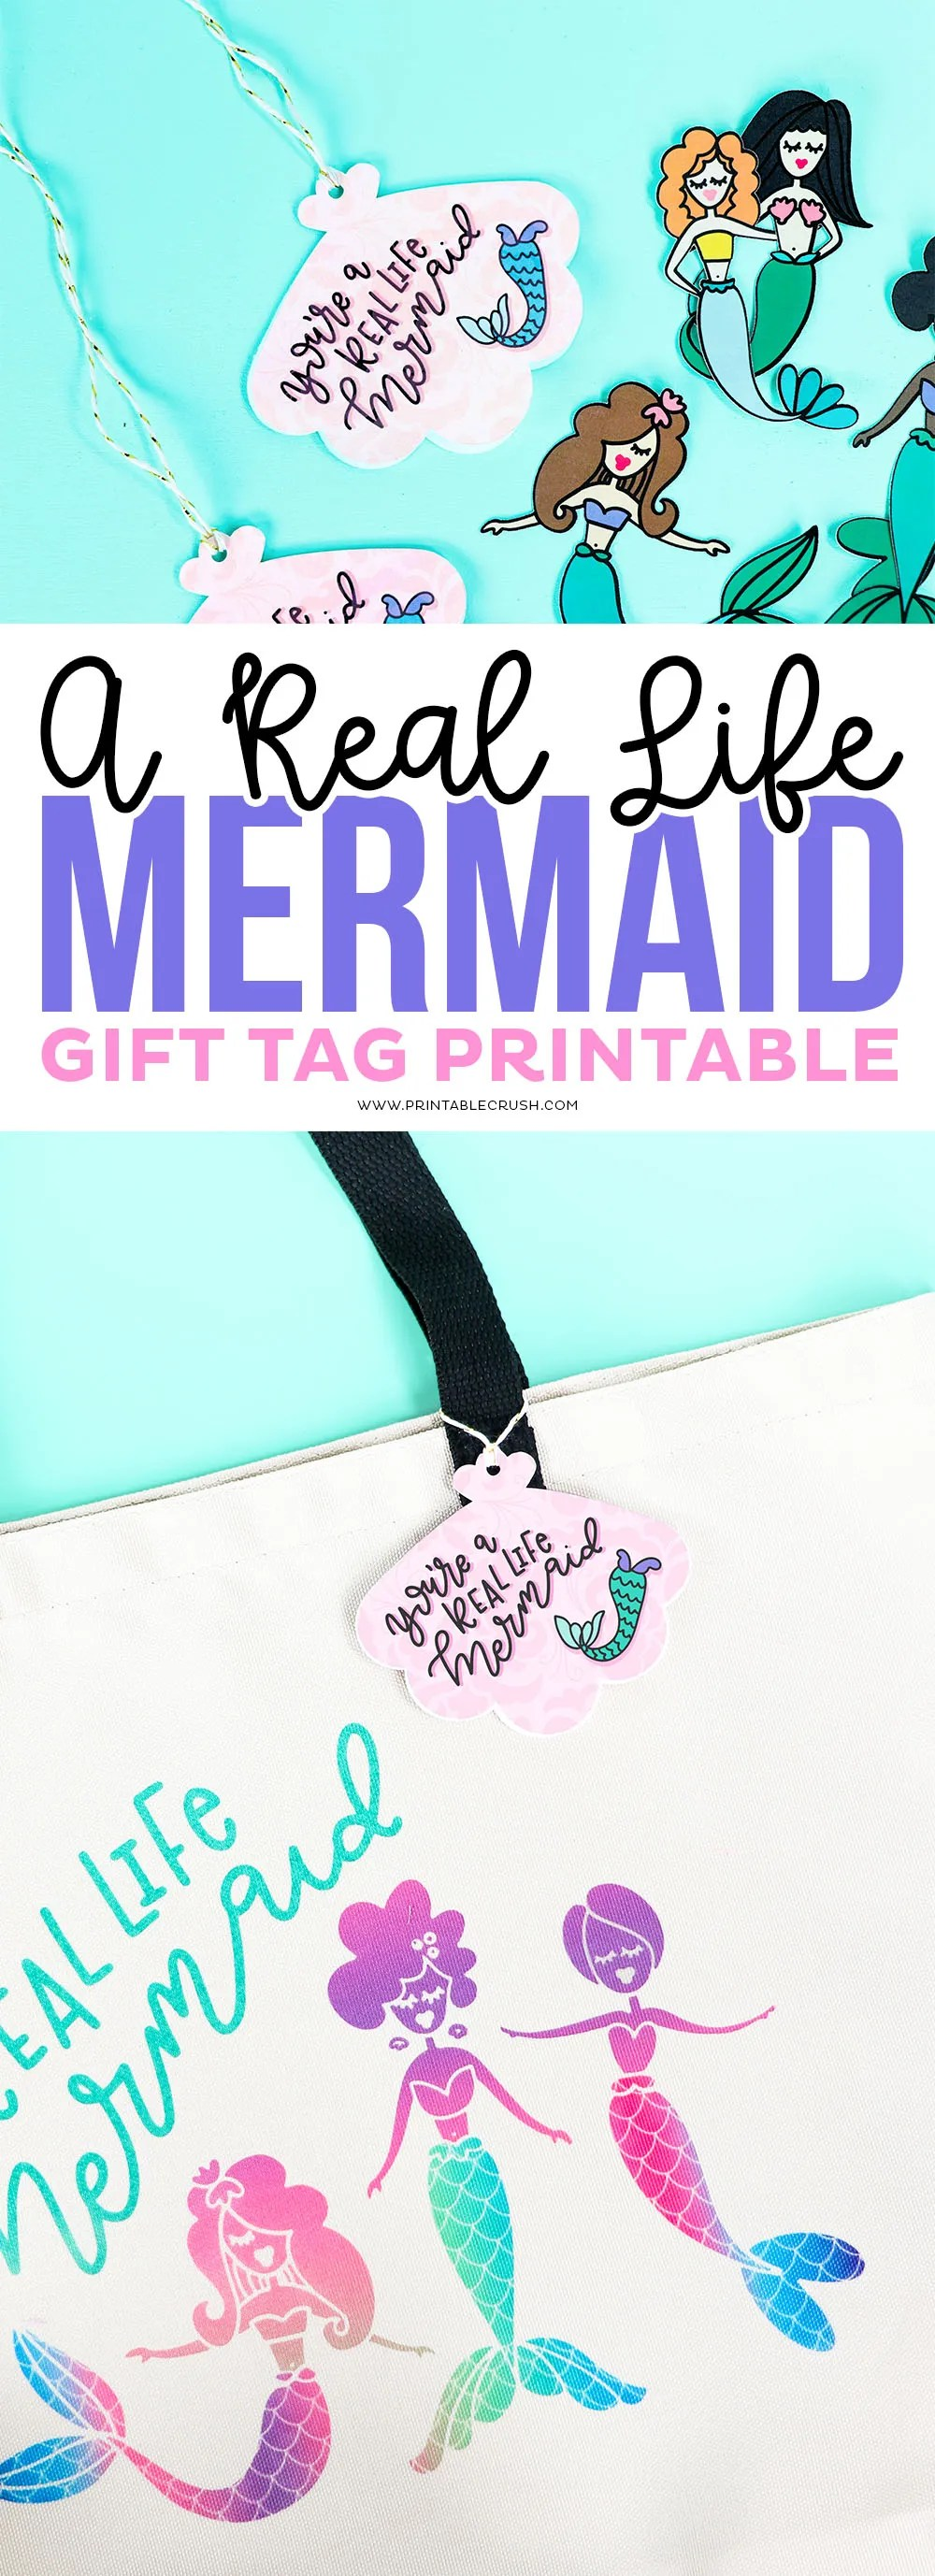 Download these FREE Mermaid Gfit Tags on Printable Crush -#mermaid #freeprintables #freeprintable #mermaidprintable #reallifemermaid #mermaidgifttag #gifttags #giftideas #mermaidgifttags via @printablecrush